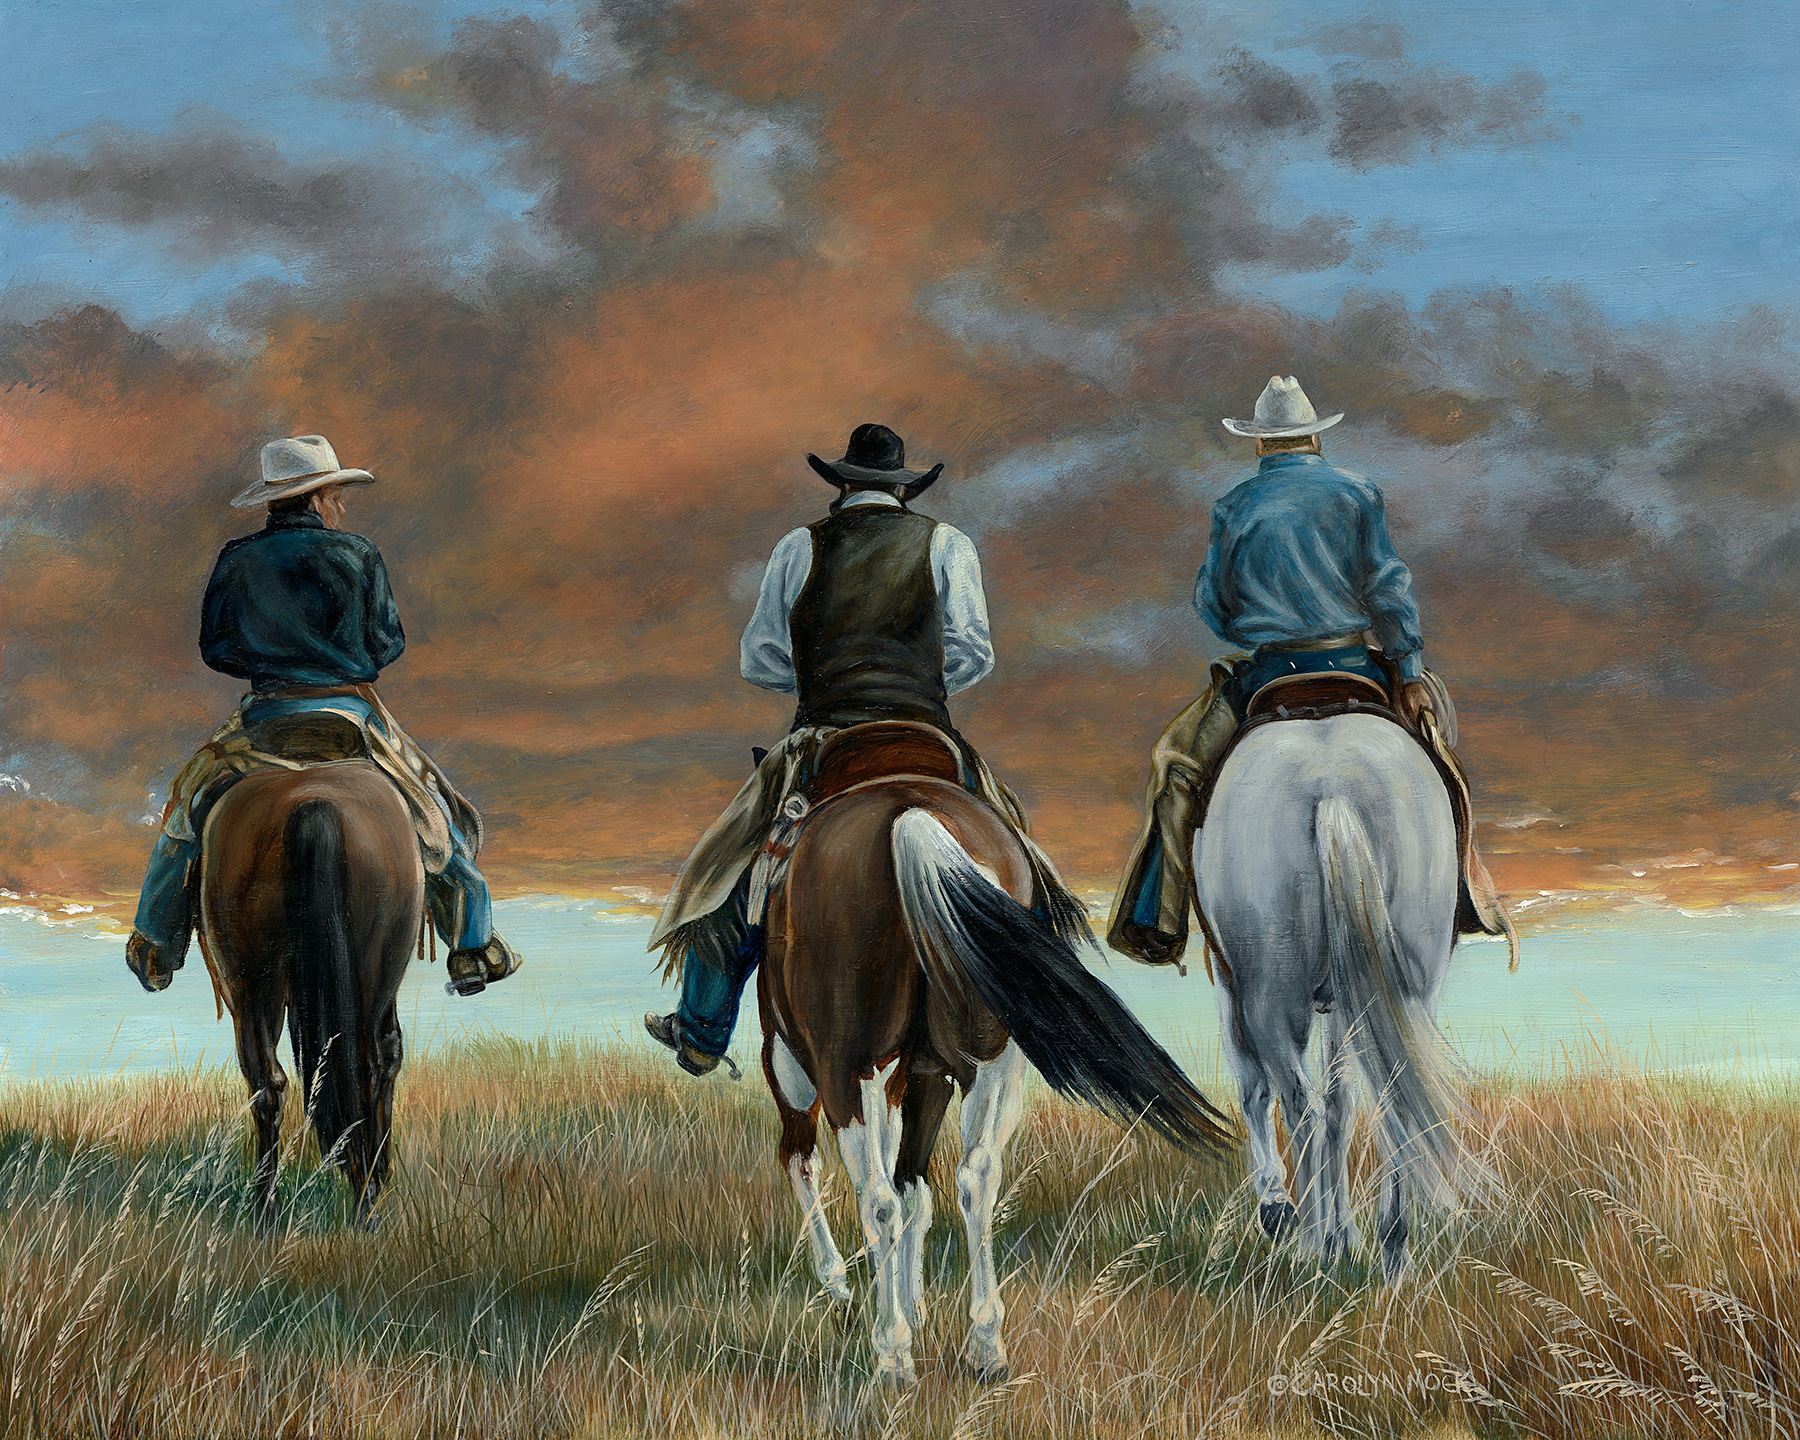 Three cowboys ride off into the sunset